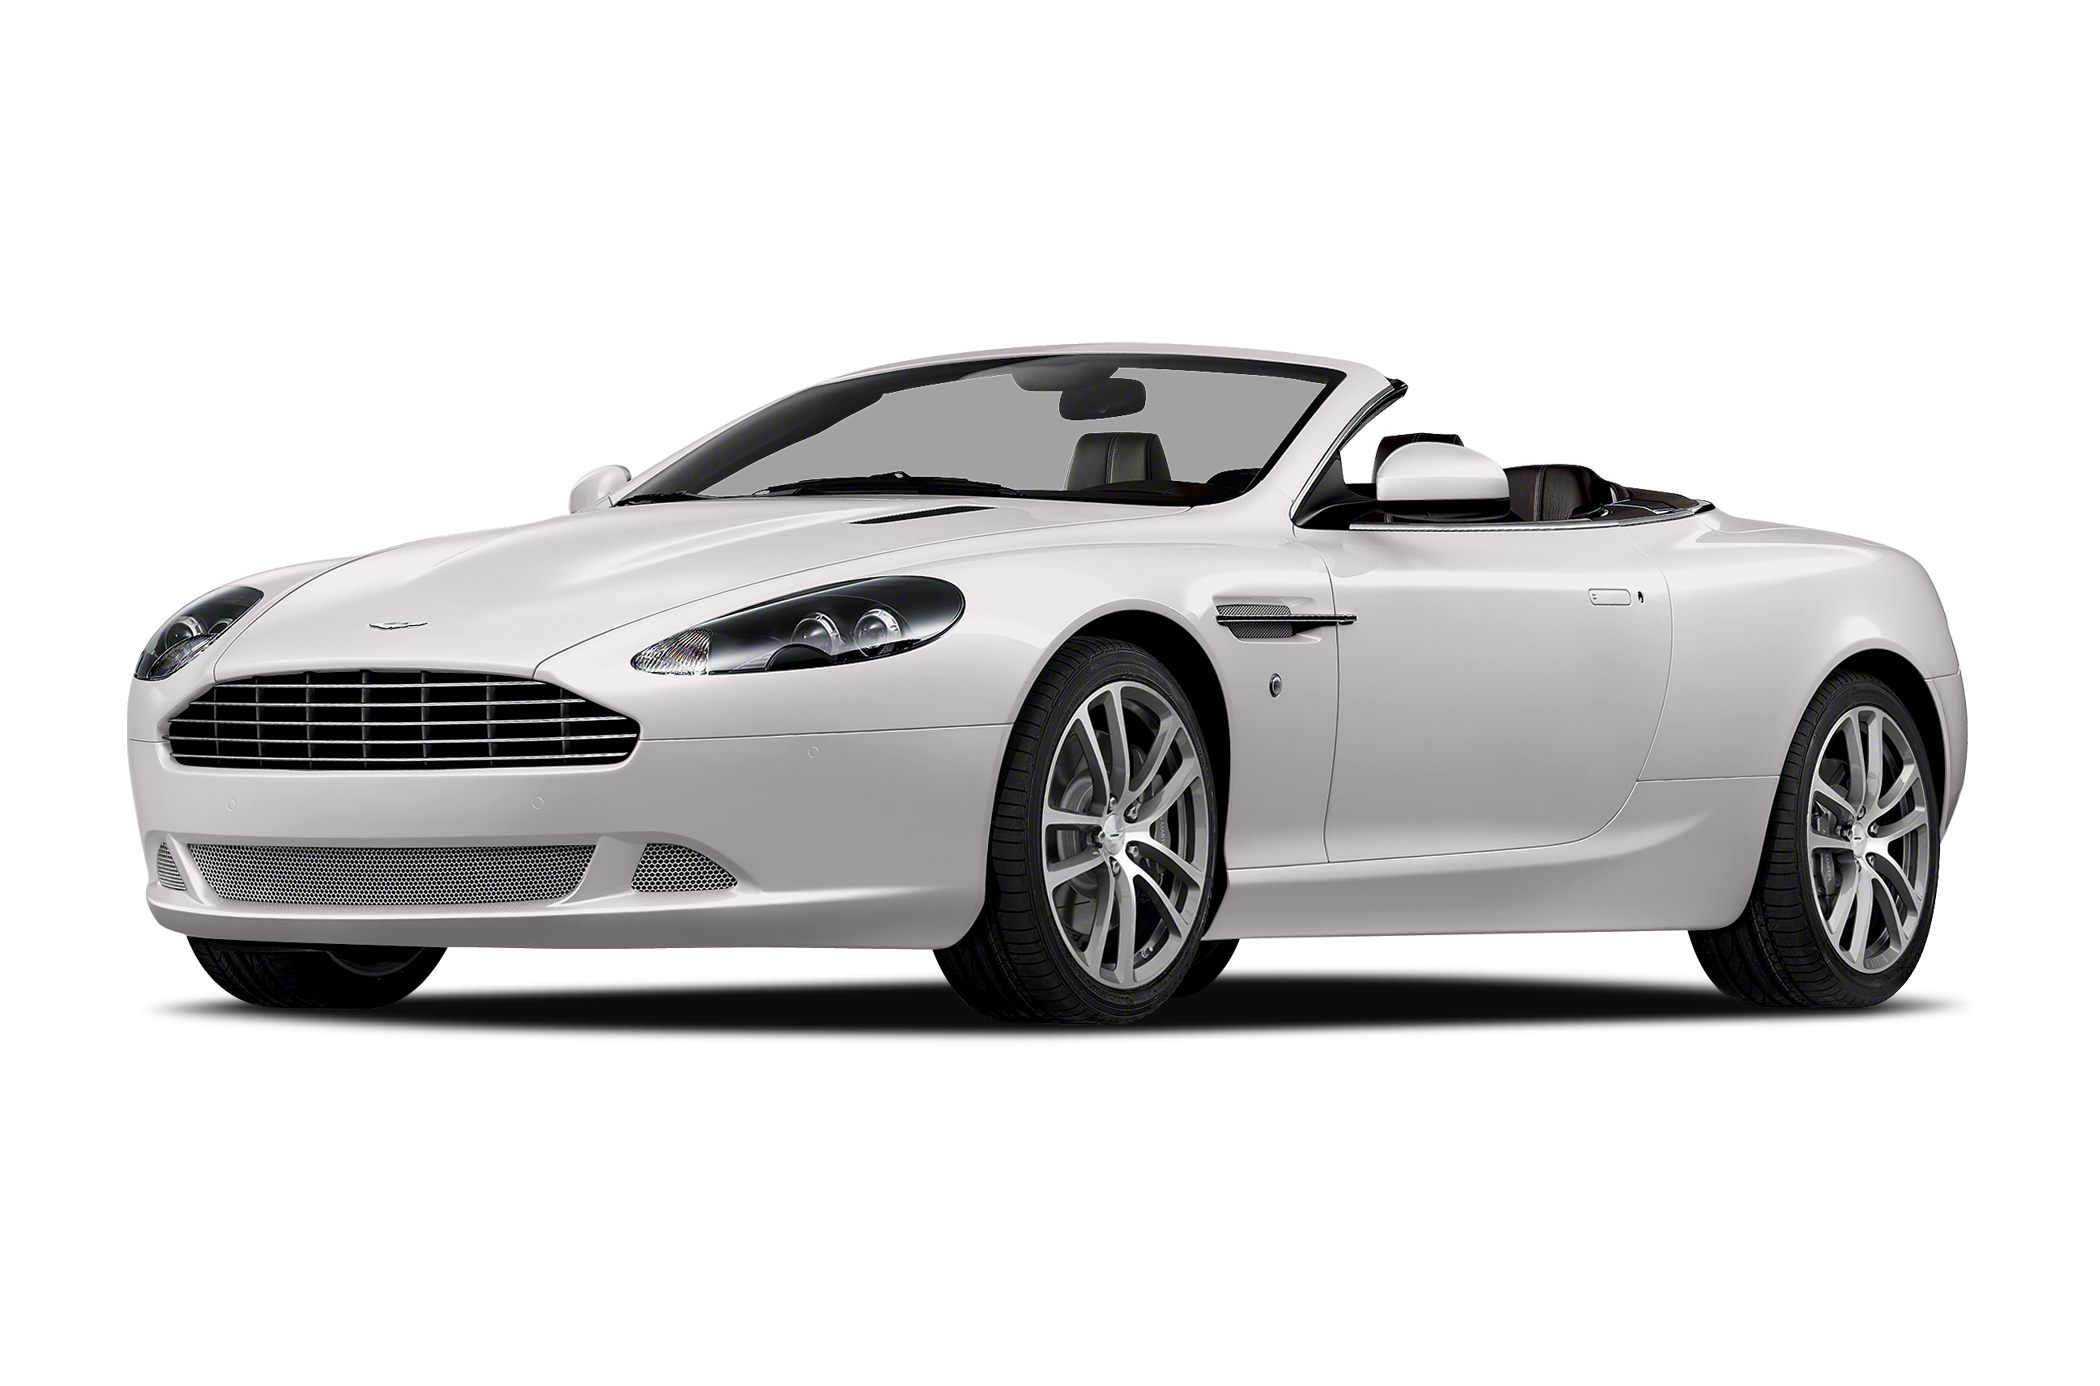 2012 Aston Martin DB9